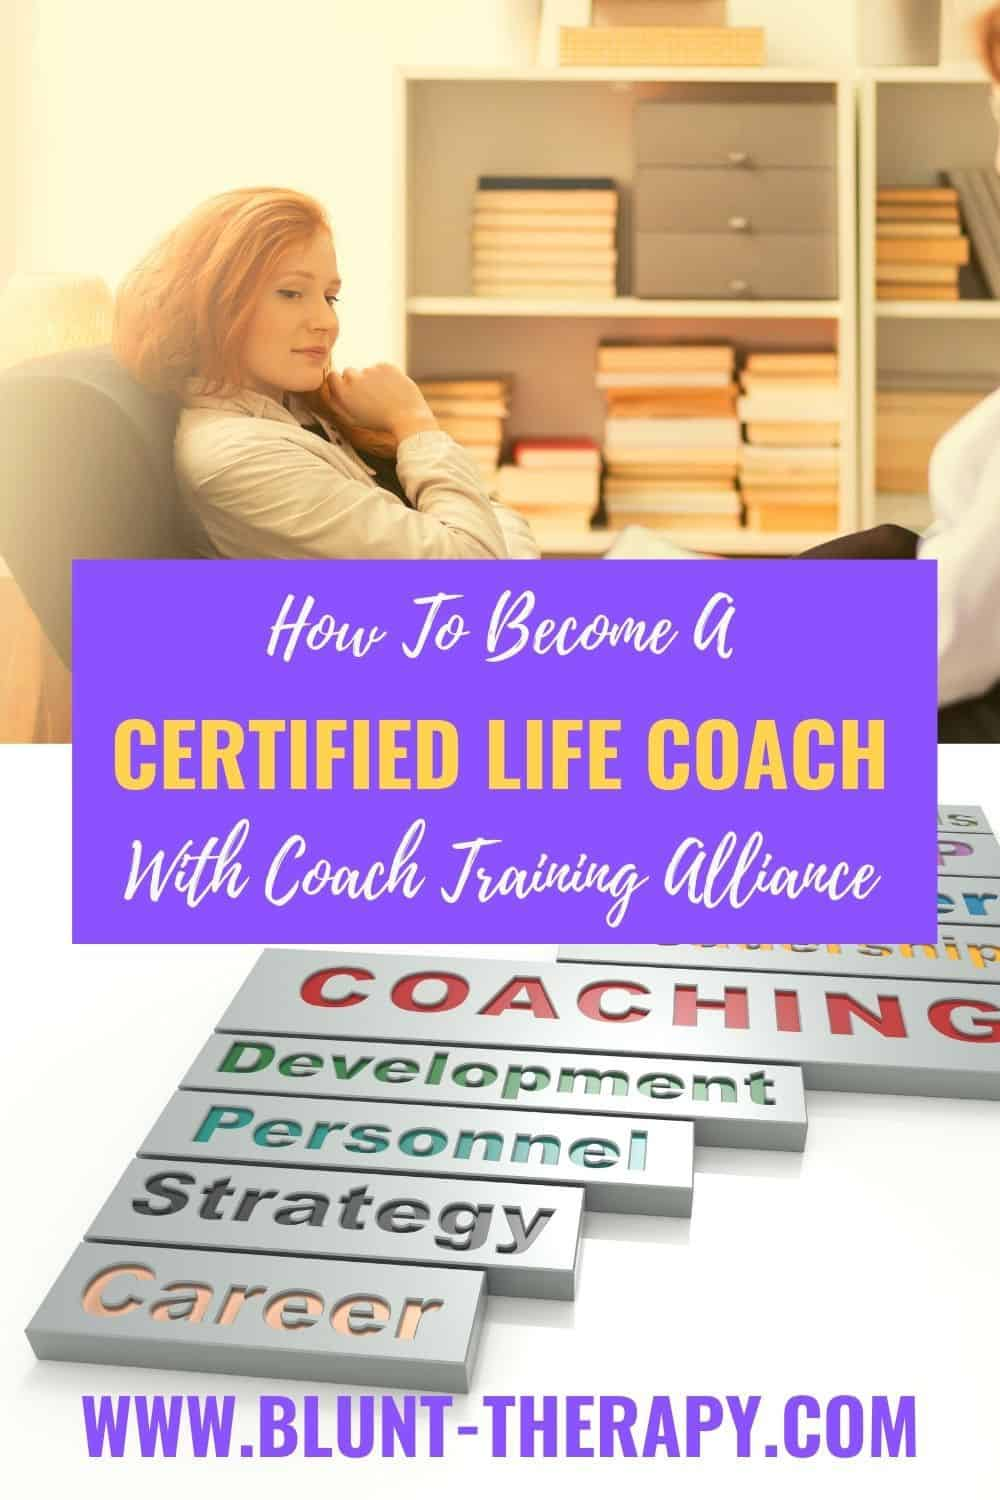 How To Become a Certified Coach With Coach Training Alliance in 2021